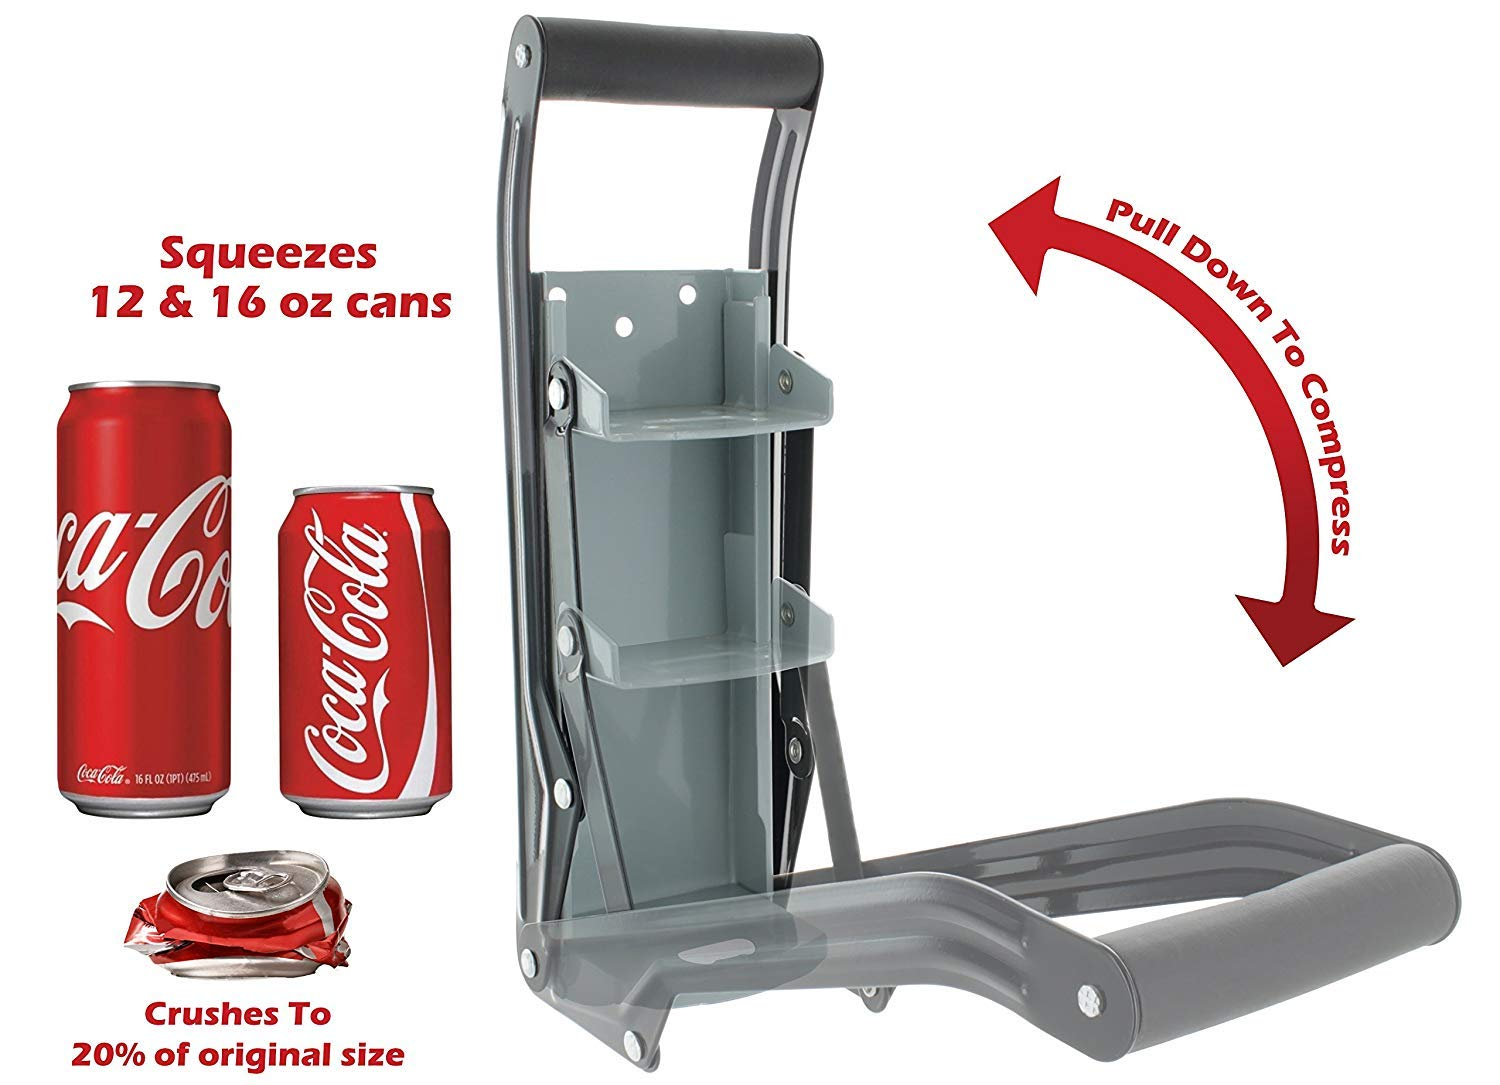 Delta Prime Savings Club - 12oz / 16oz Metal Can Crusher/Smasher, Crushes Soda Cans, Beer Cans and Water Bottles - Heavy Duty Large Metal Wall Mounted Soda Beer Smasher - Eco-Friendly Recycling Tool by Delta Prime Savings Club